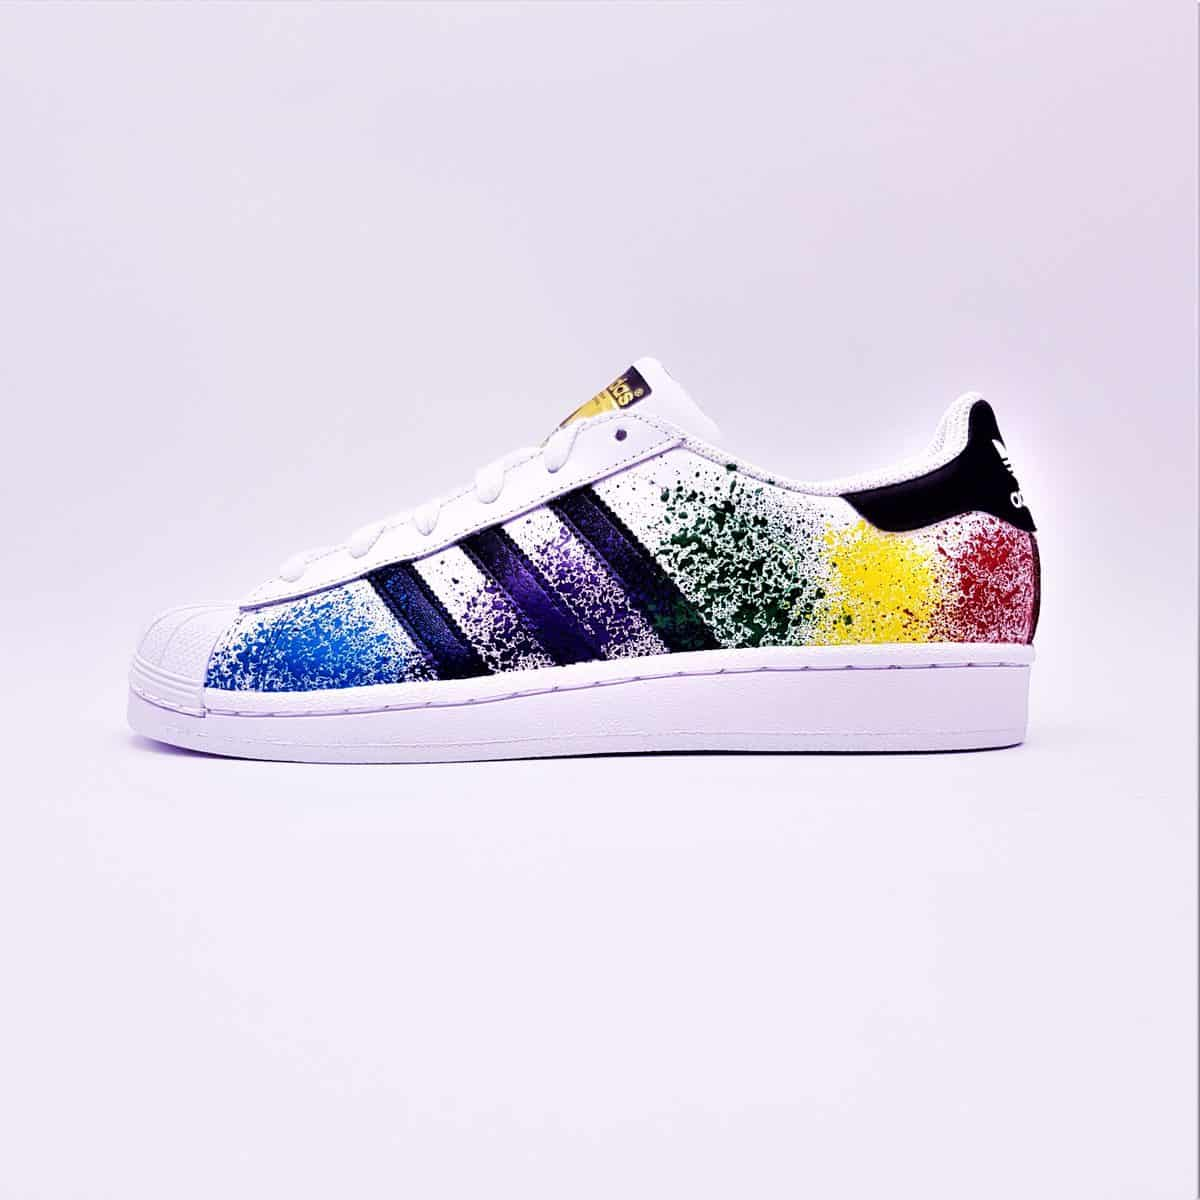 Adidas Superstar Adidas Color Splash Superstar ATPIK Custom Sneakers